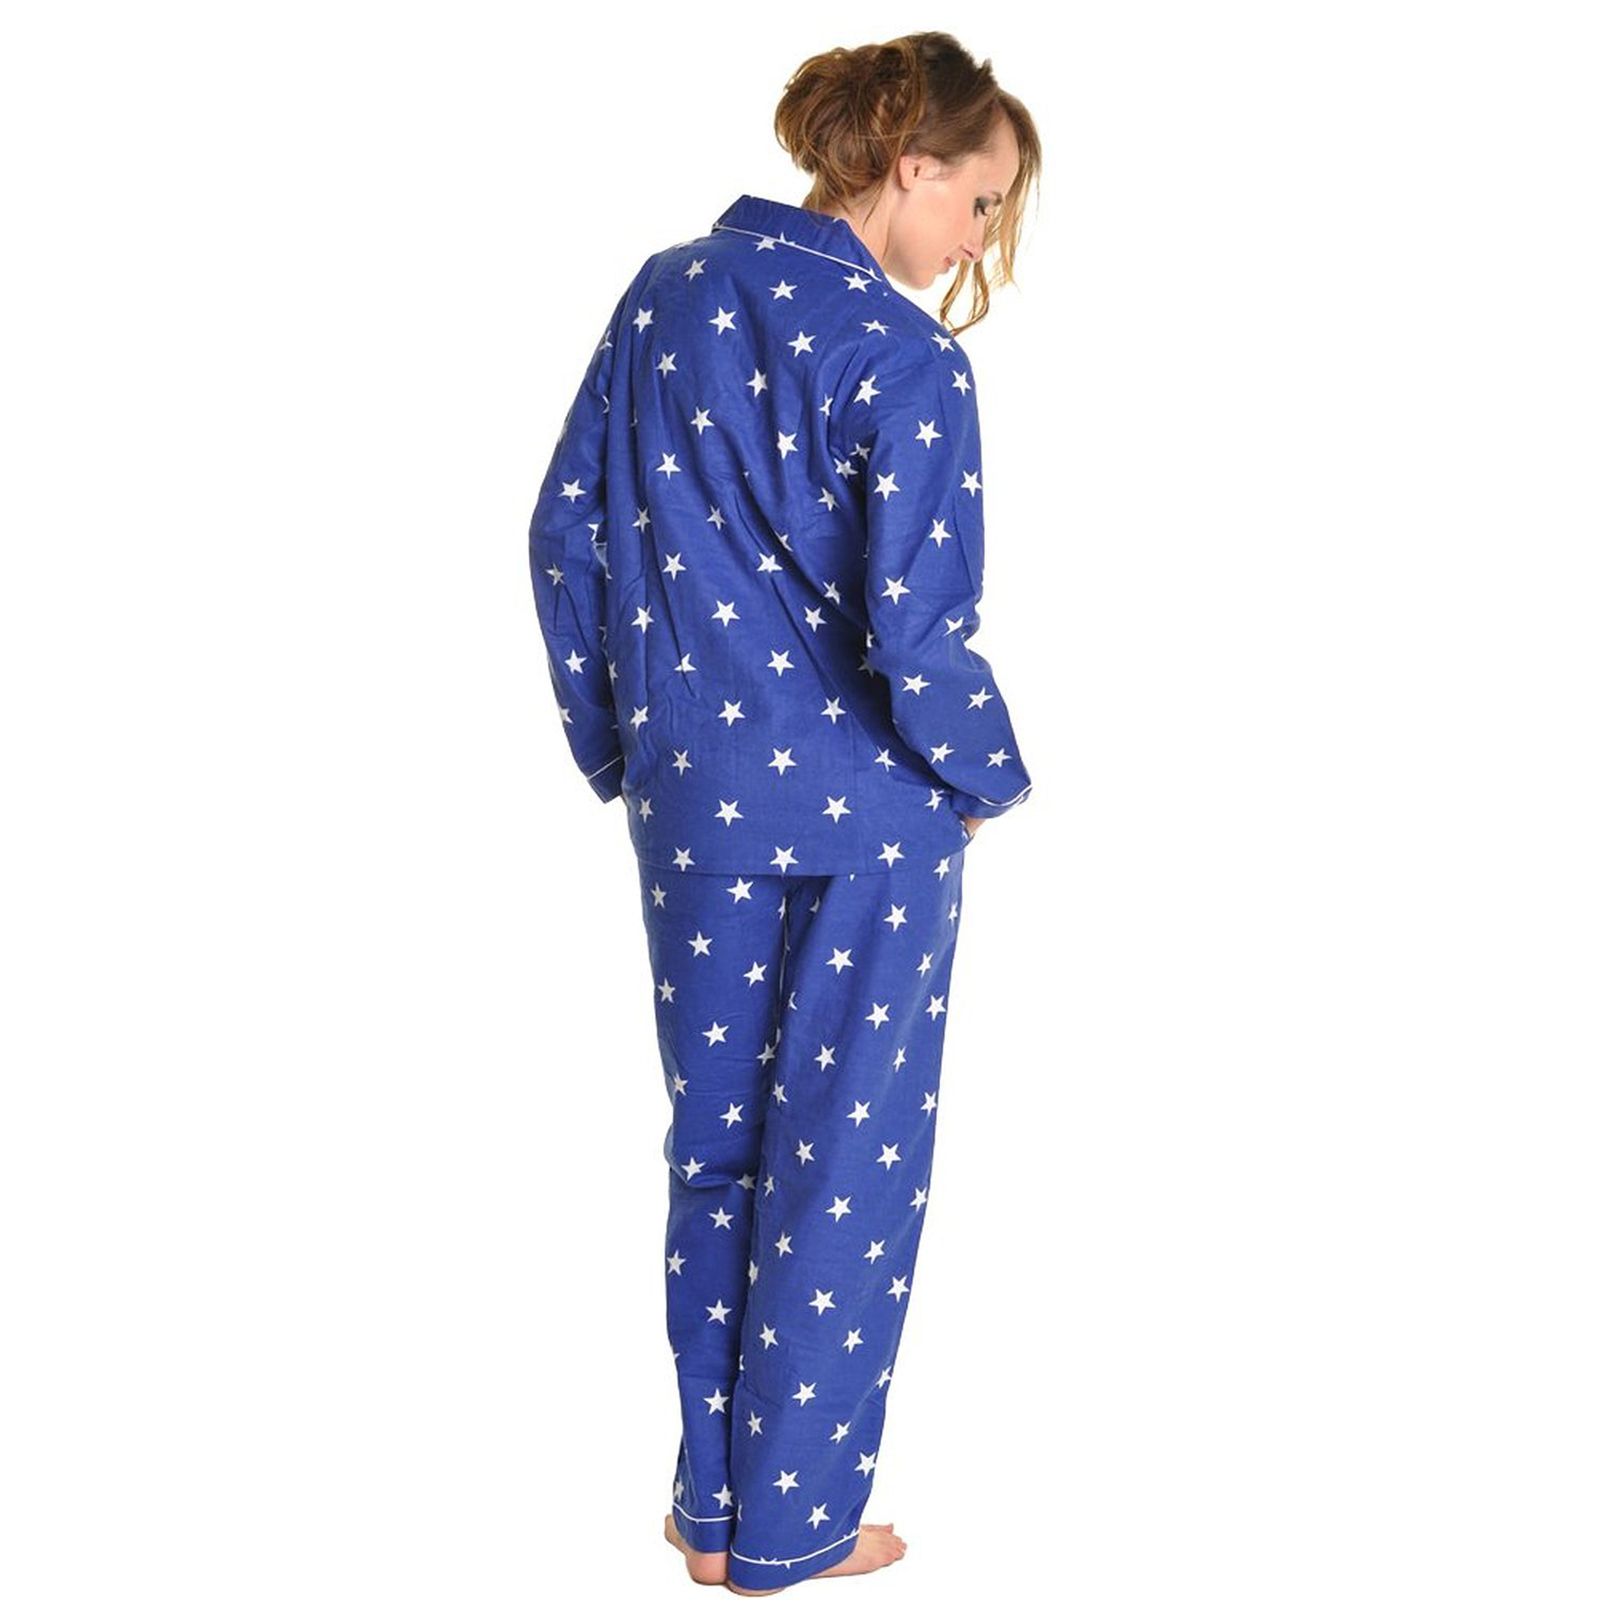 Pajamas are a type of women's sleepwear typically consists of a loose-fitting shirt-and-pant sleepwear set that is worn for sleep and lounge. The pajama pant often features an elastic and/or a drawstring waist, so you can adjust the fit to your comfort.